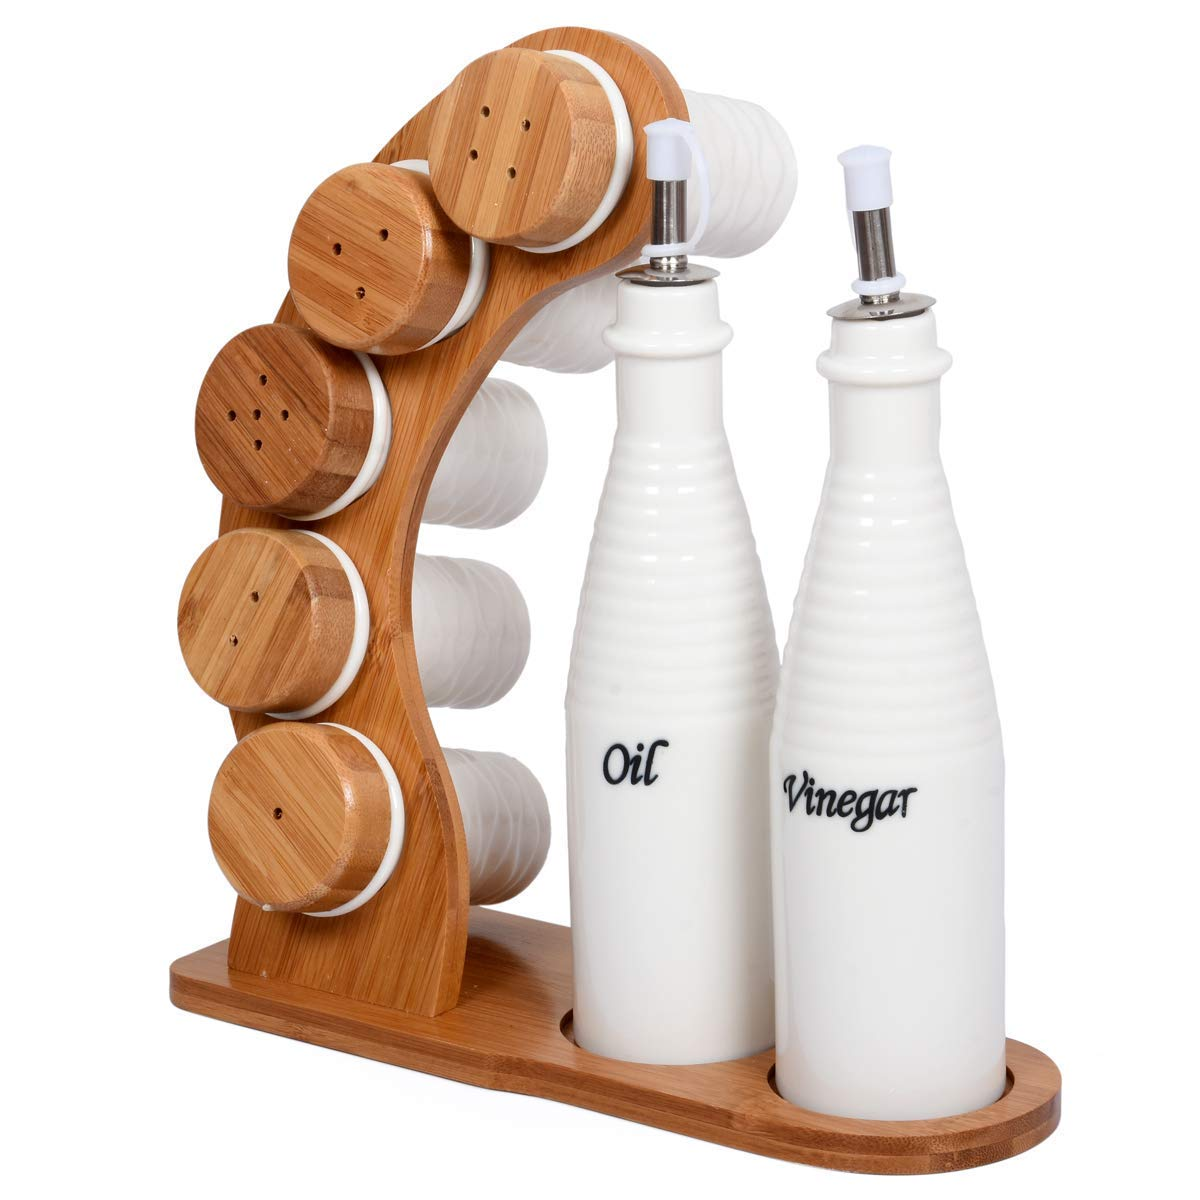 Buy golkipar latest new kitchen ceramic porcelain bottle jar oil olive vinegar pot storage container dispenser cooking tools with wooden stand online at low